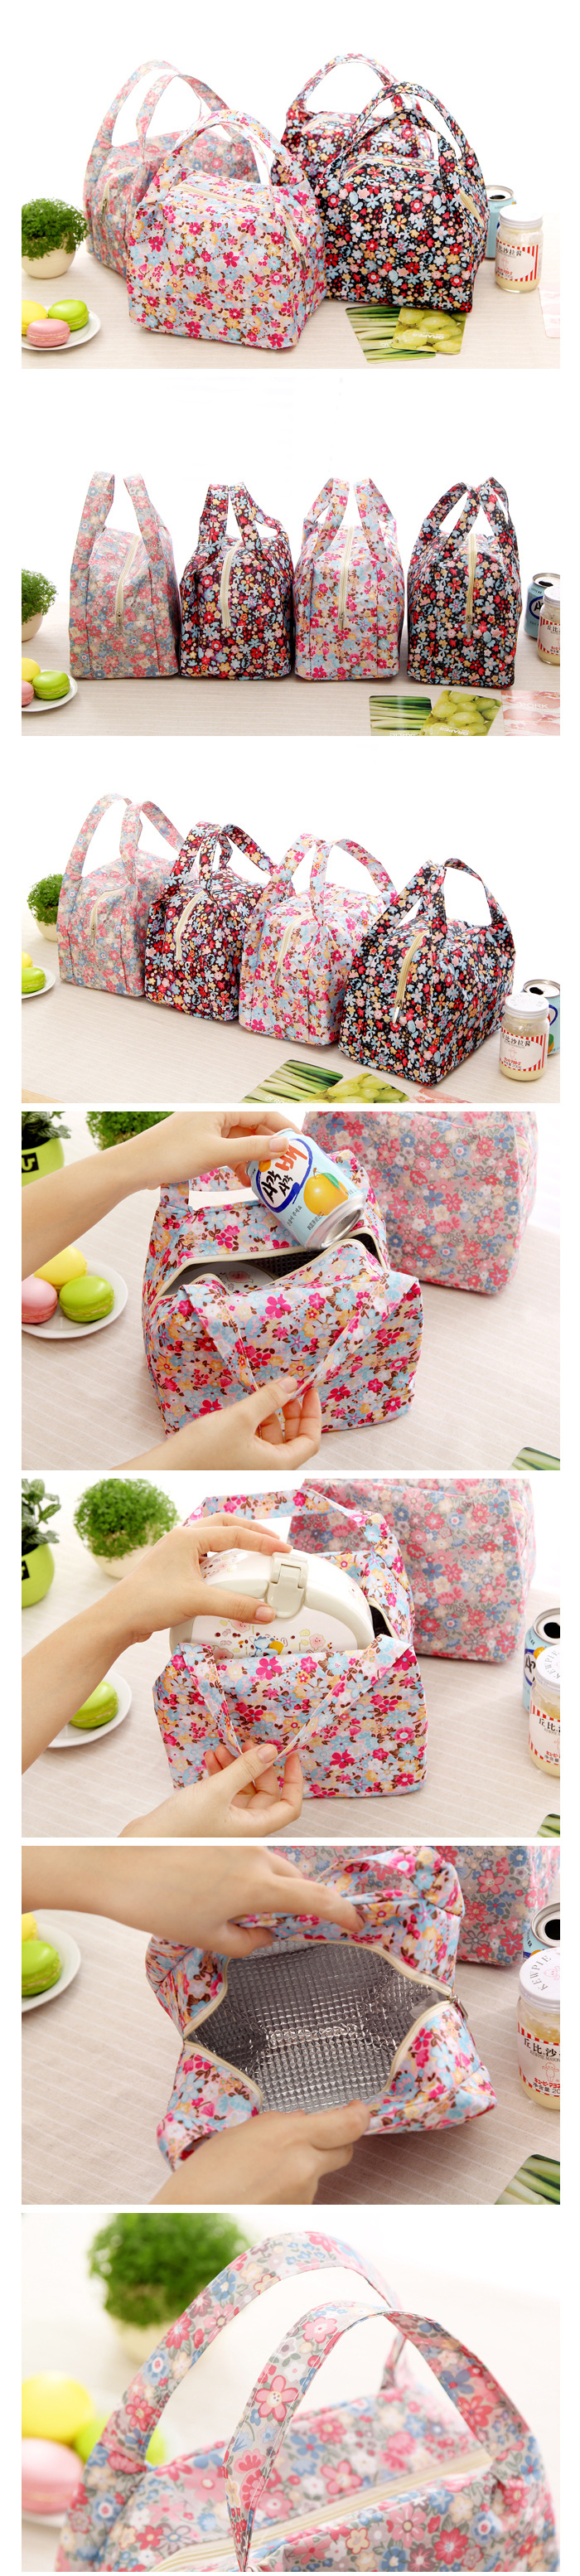 Woman Oxford Waterproof Lunch Tote Bag Travel Picnic Cooler Insulated Summer Beach Storage Container